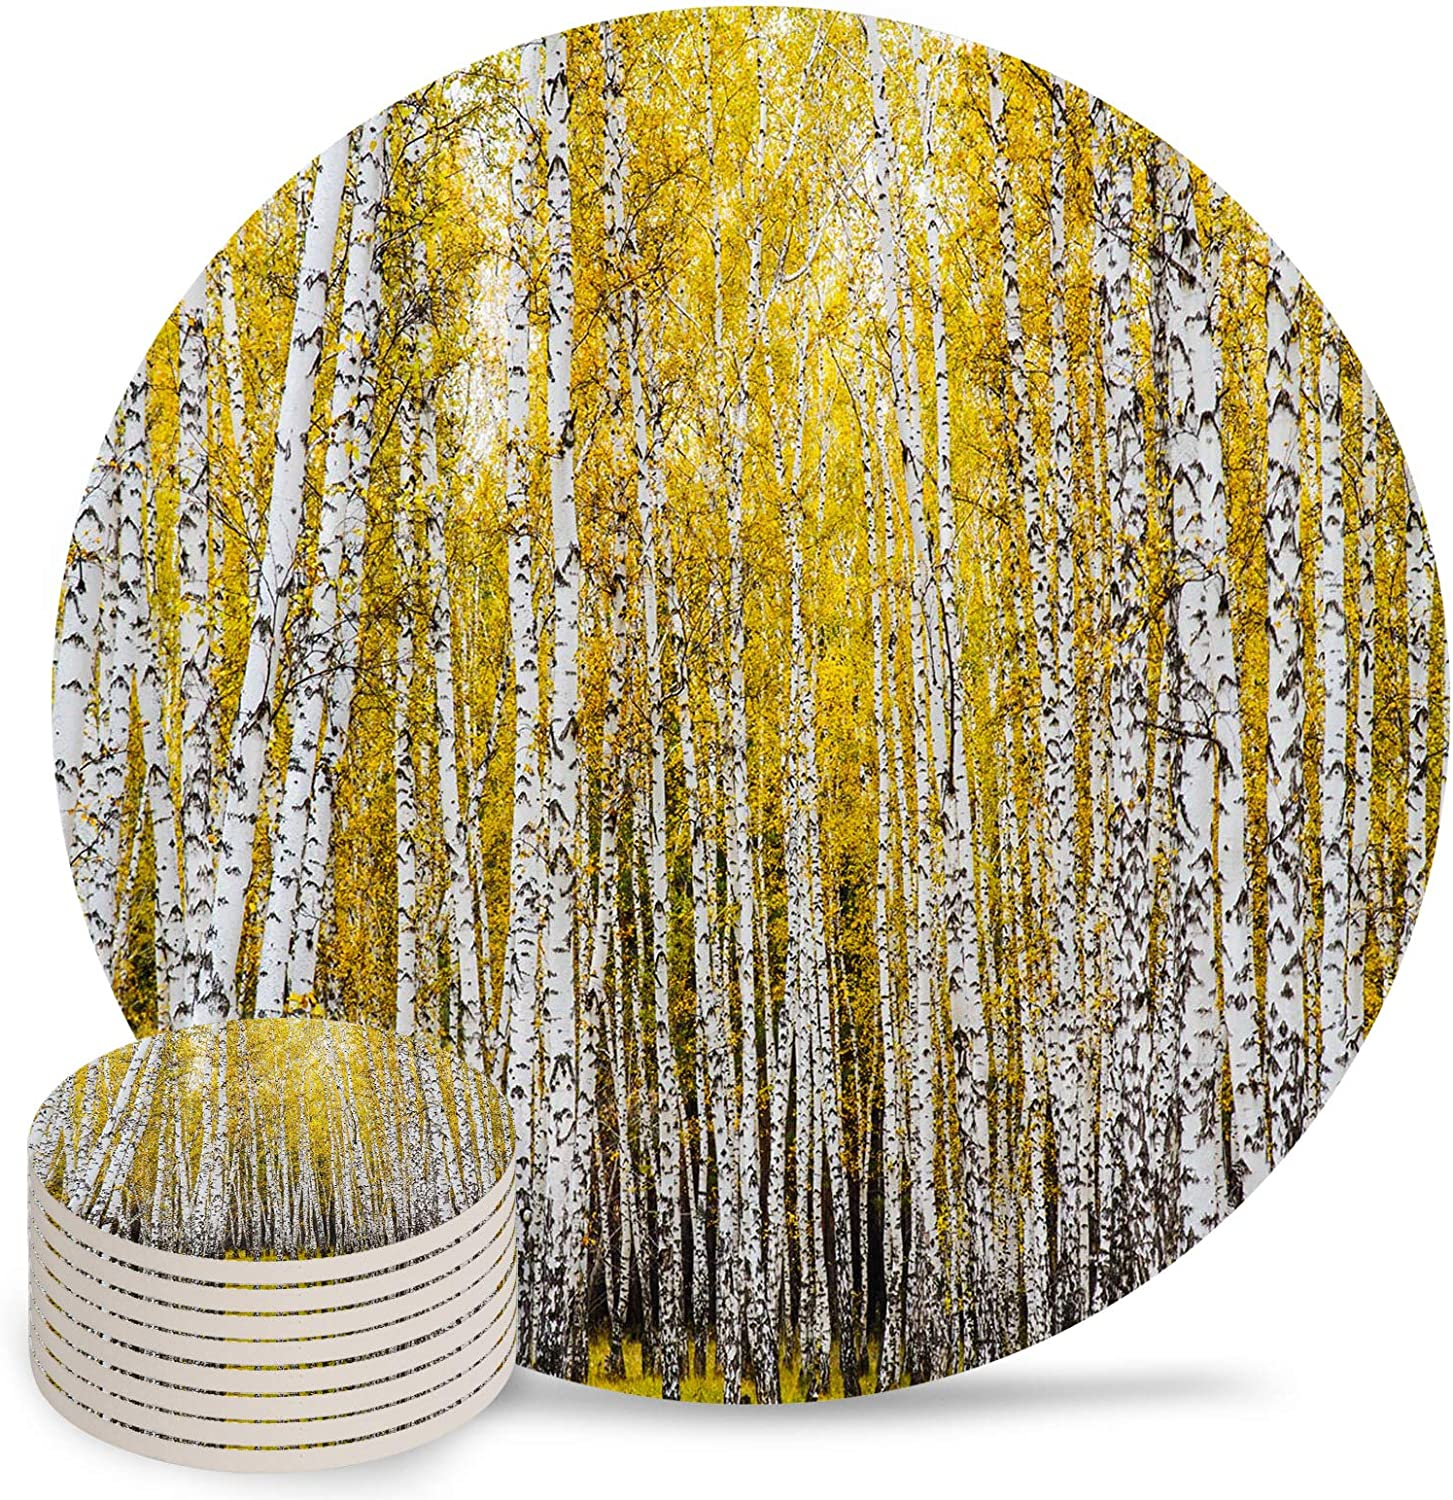 Coasters Max 51% OFF for Lowest price challenge Drinks Set of 8 Trees Yellow Autumn Poplar Beautif